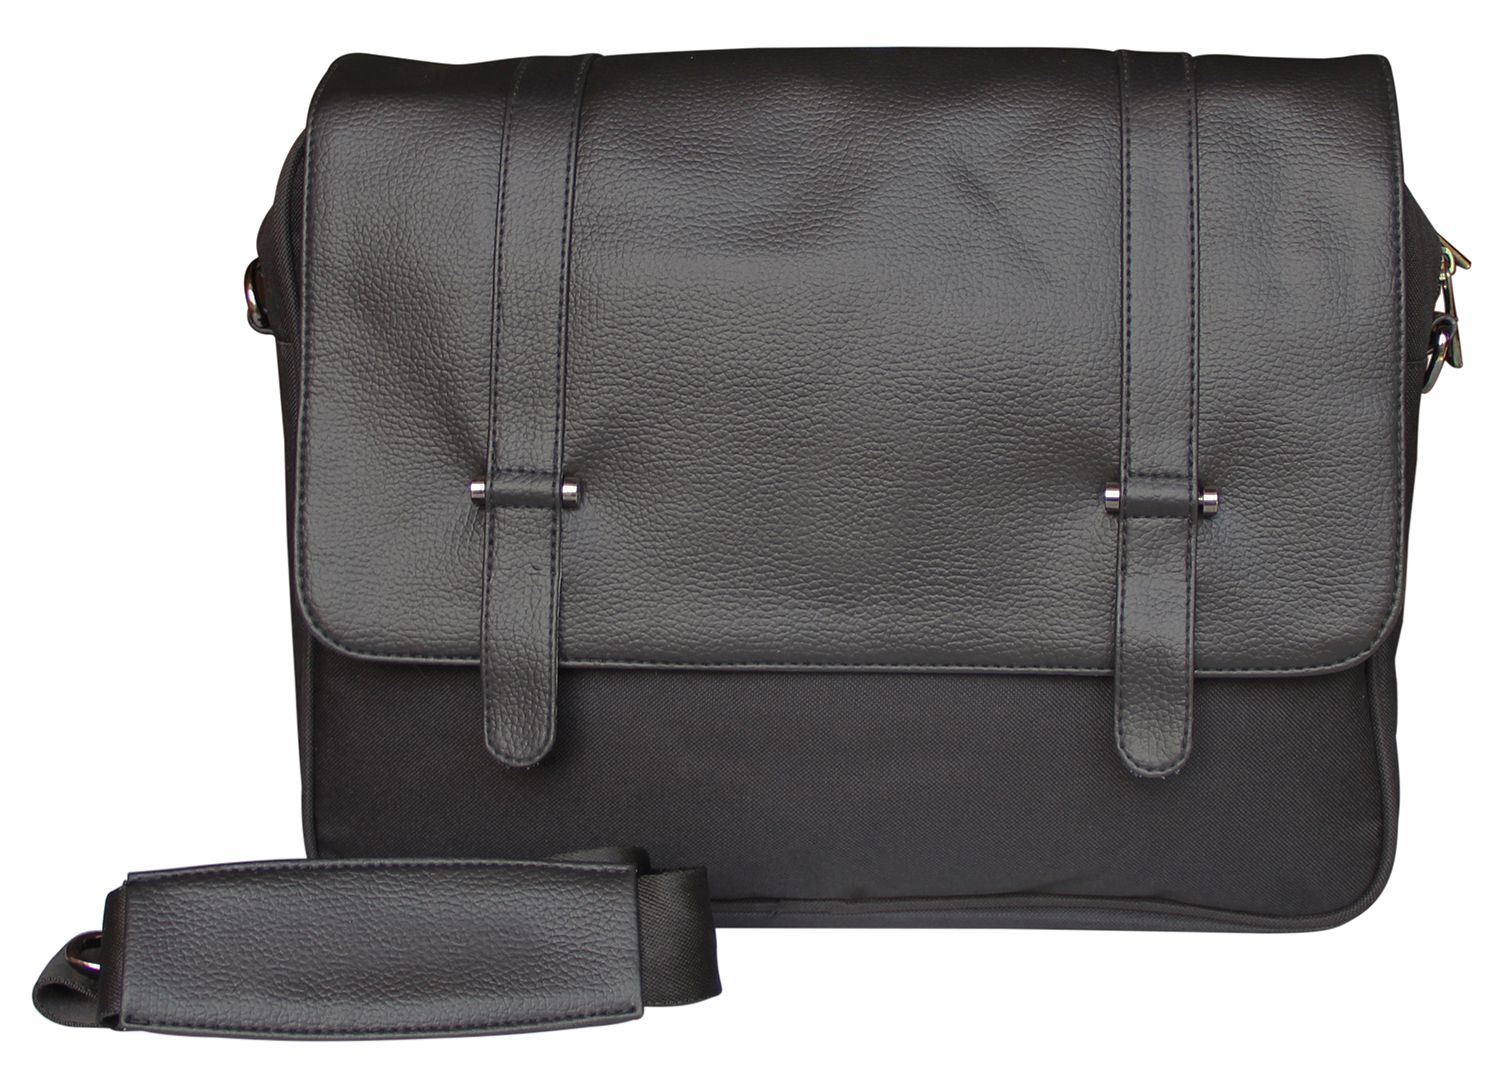 Mohawk Black Leather Office Messenger Bag